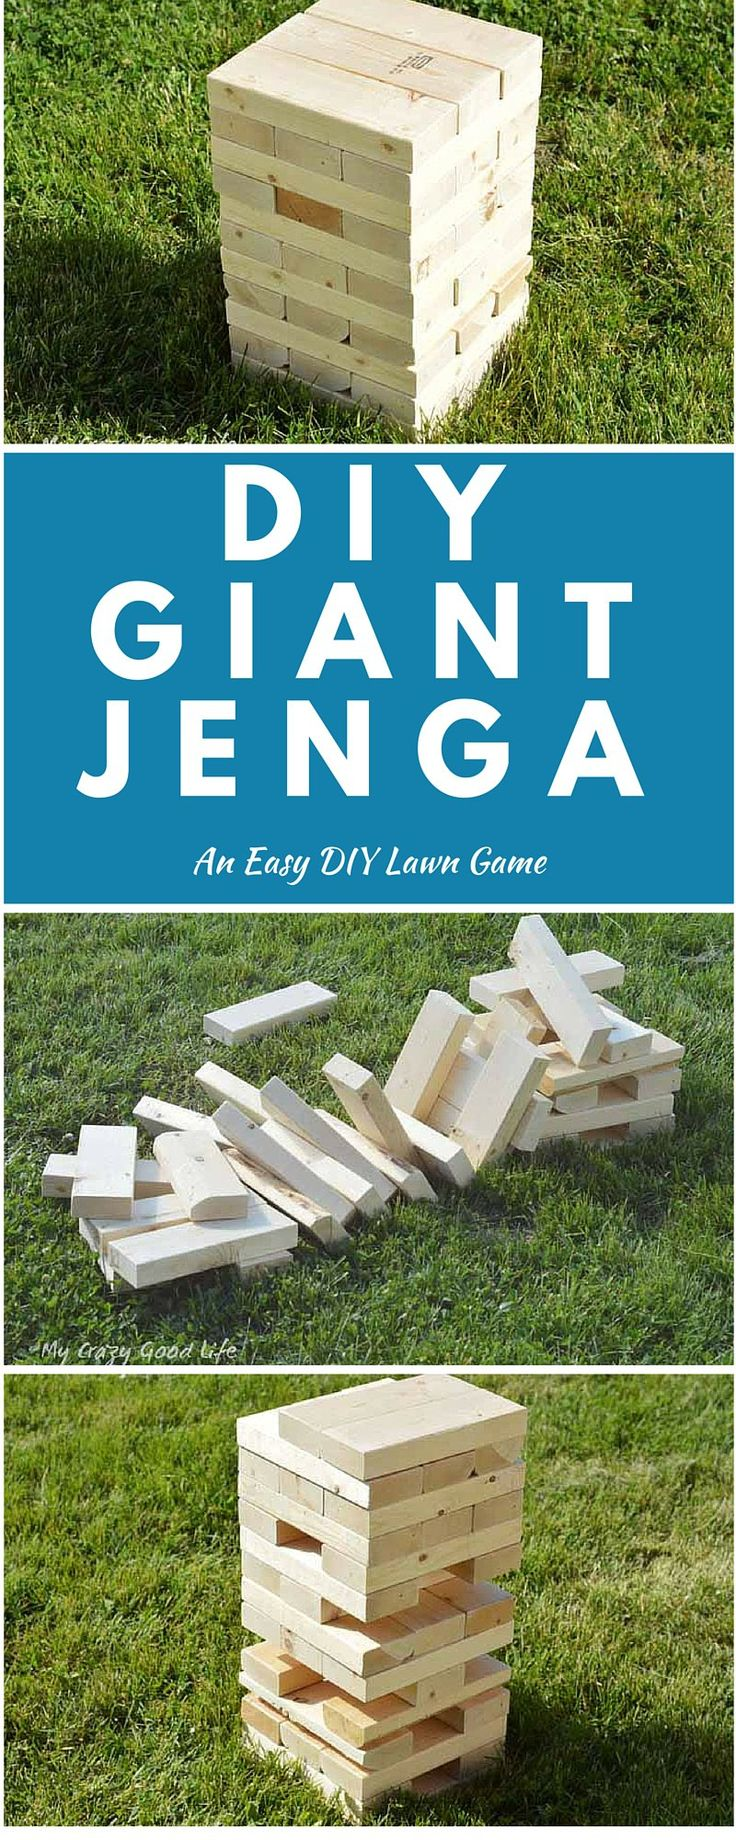 You can easily build this DIY Giant Jenga lawn game for ...